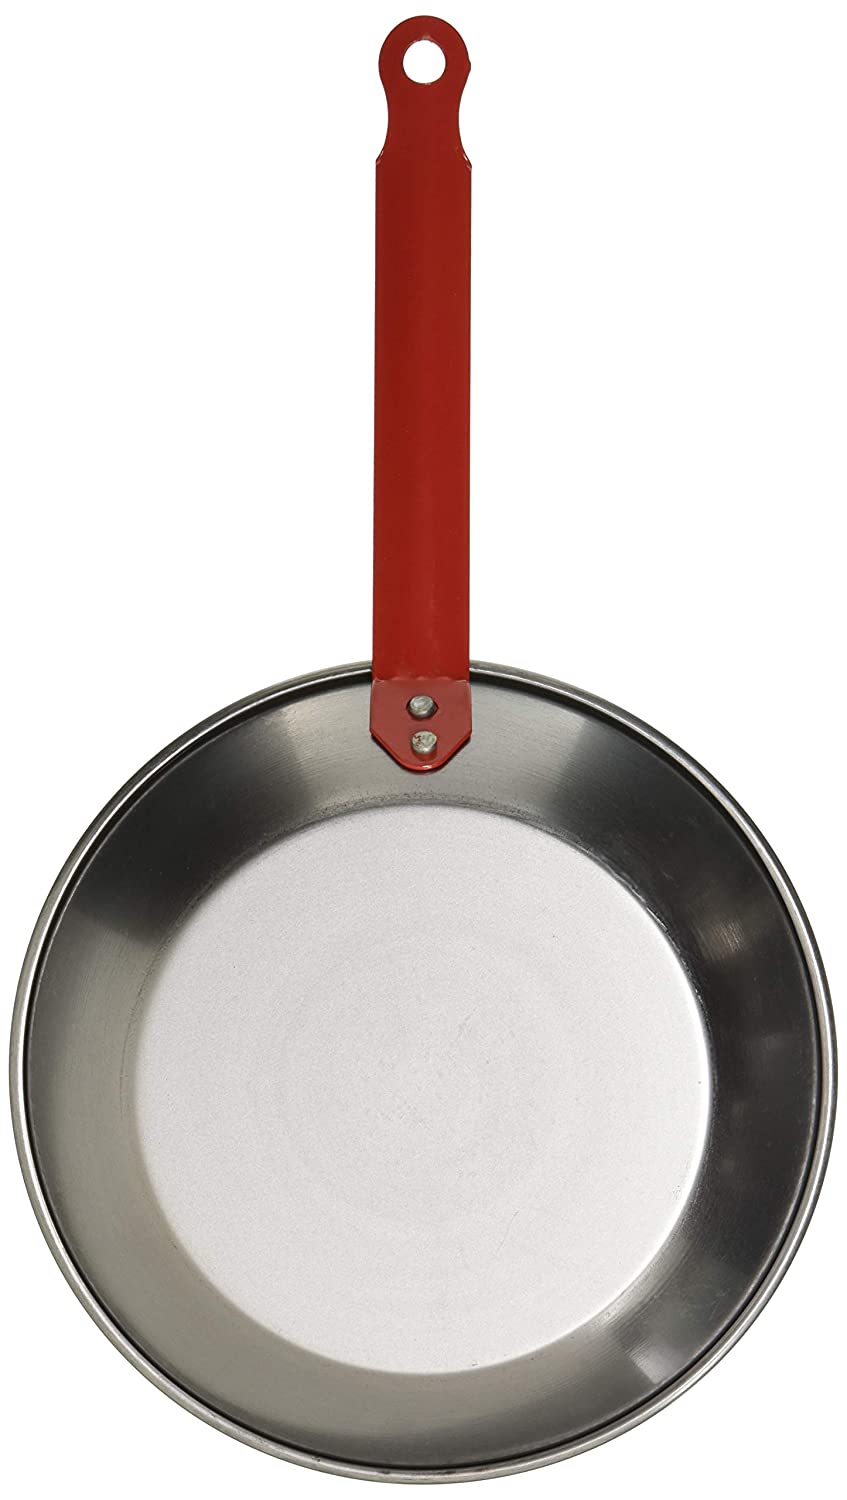 Amazon.com: La Ideal_Polished Steel Shallow Fry Pan with One Handle, 18 cm: Home & Kitchen